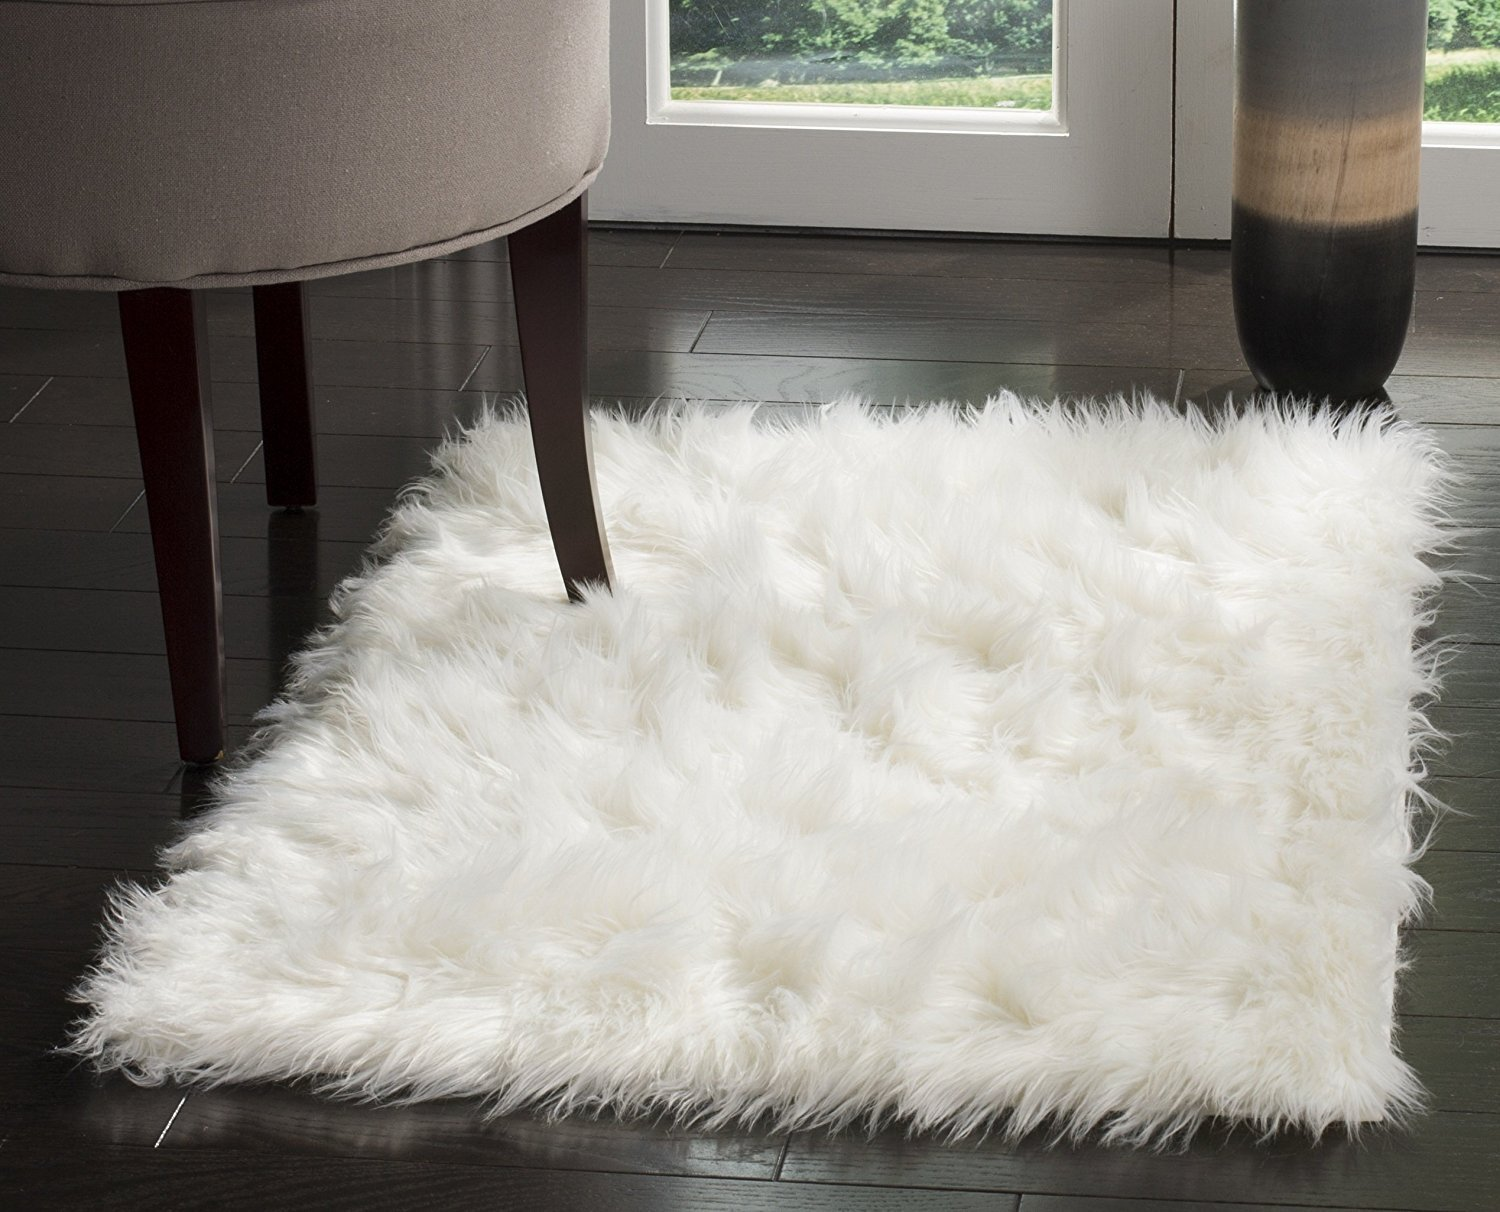 HUAHOO White Faux Sheepskin Area Rug Chair Cover Seat Pad Plain Shaggy Area Rugs For Bedroom Sofa Floor Ivory White (5' x 8' Livingroom Rug)